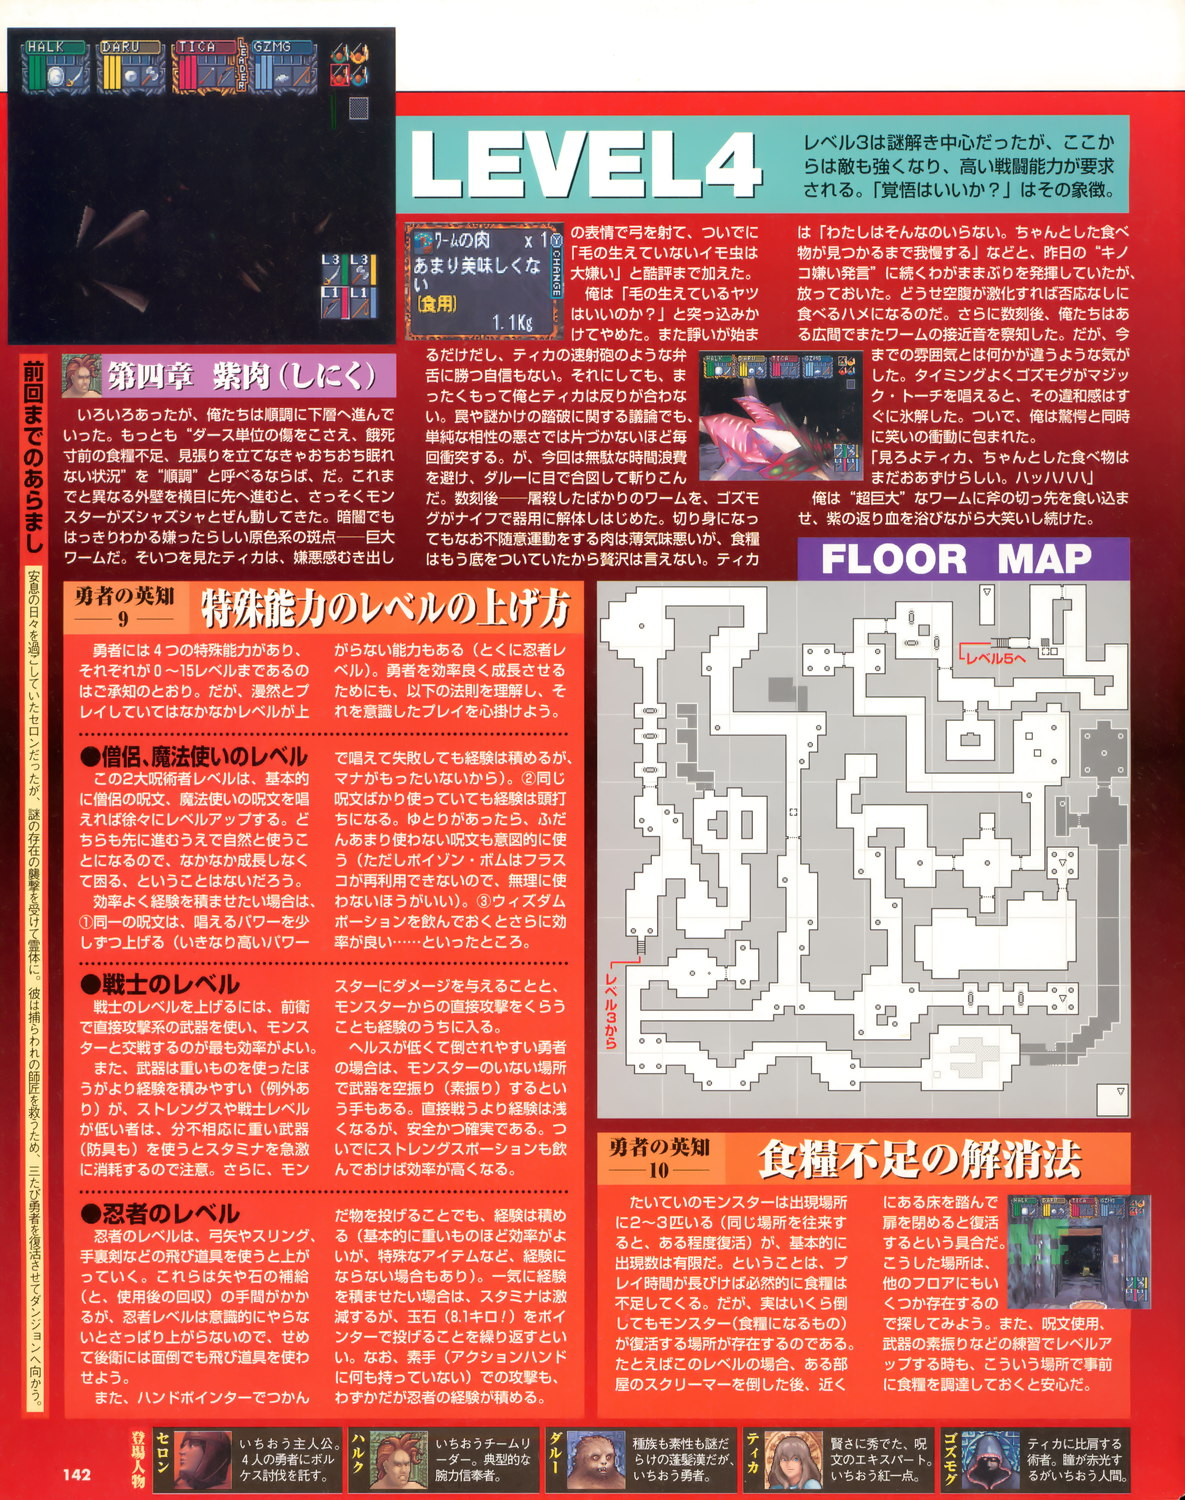 Dungeon Master Nexus Guide published in Japanese magazine 'Sega Saturn Magazine', Vol 12 24 April 1998, Page 142